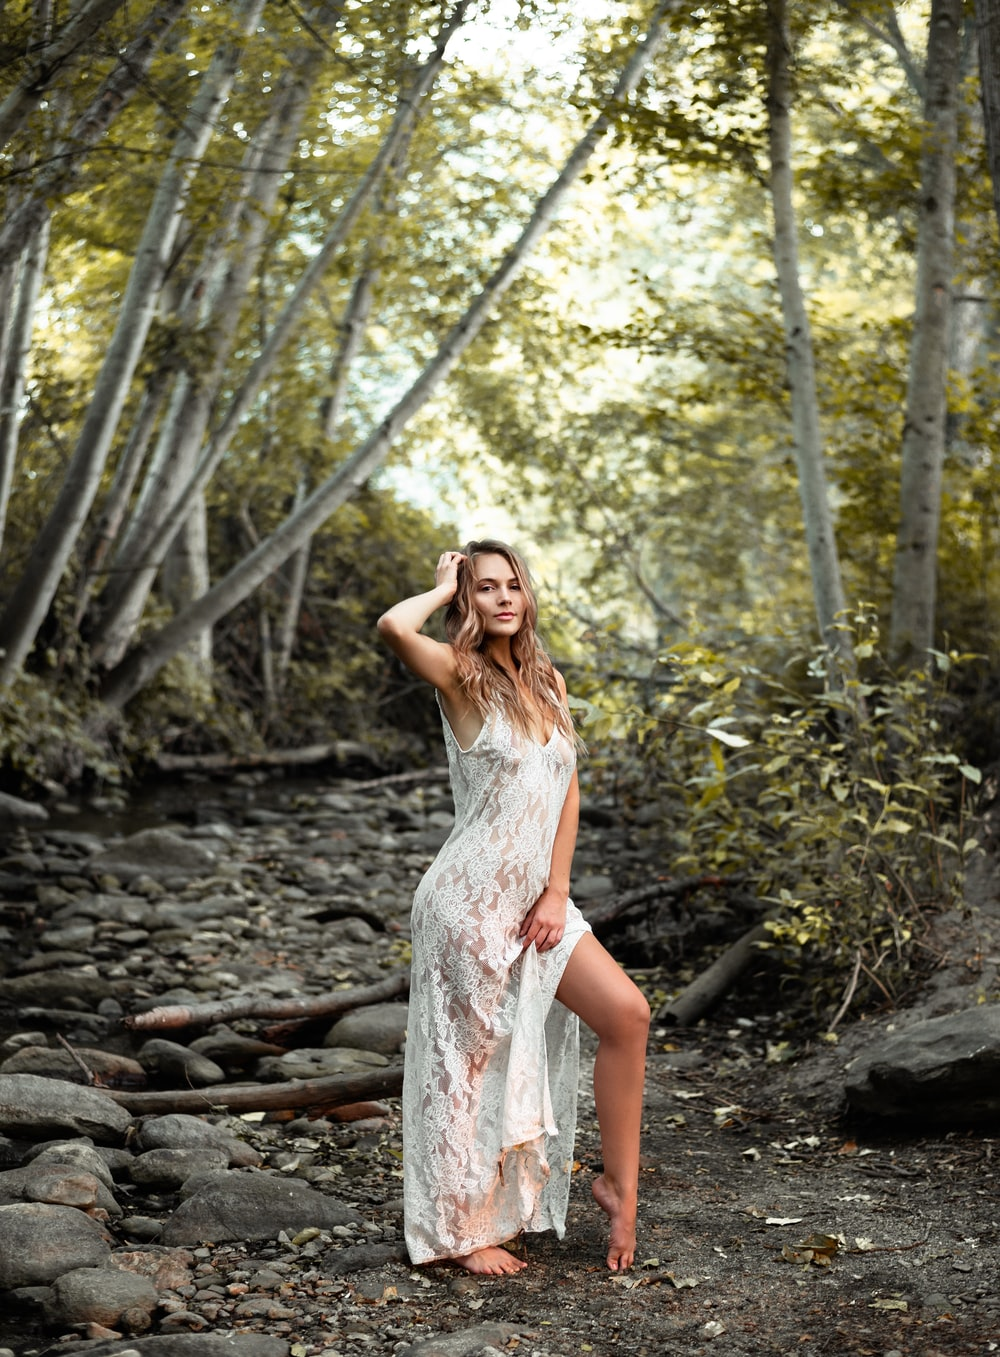 woman in white floral slit dress standing near trees